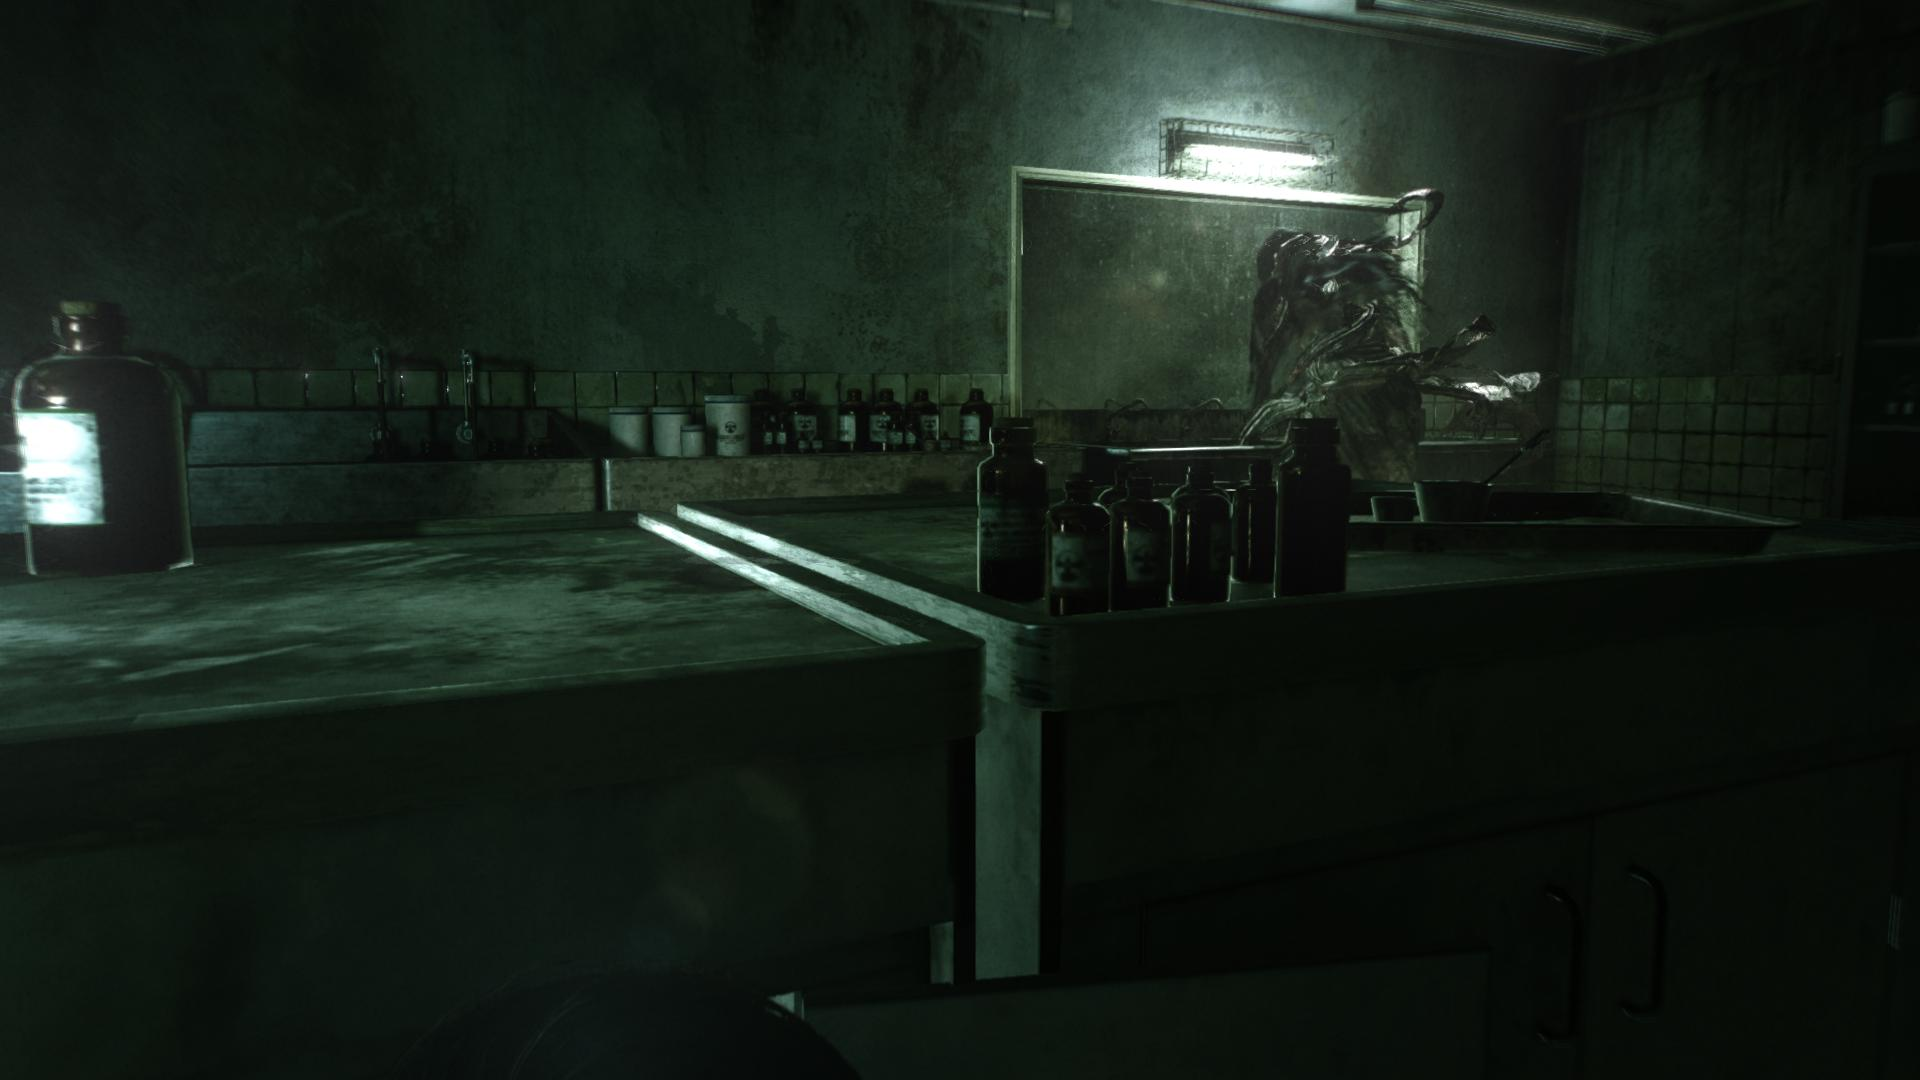 000104.Jpg - Evil Within 2, the